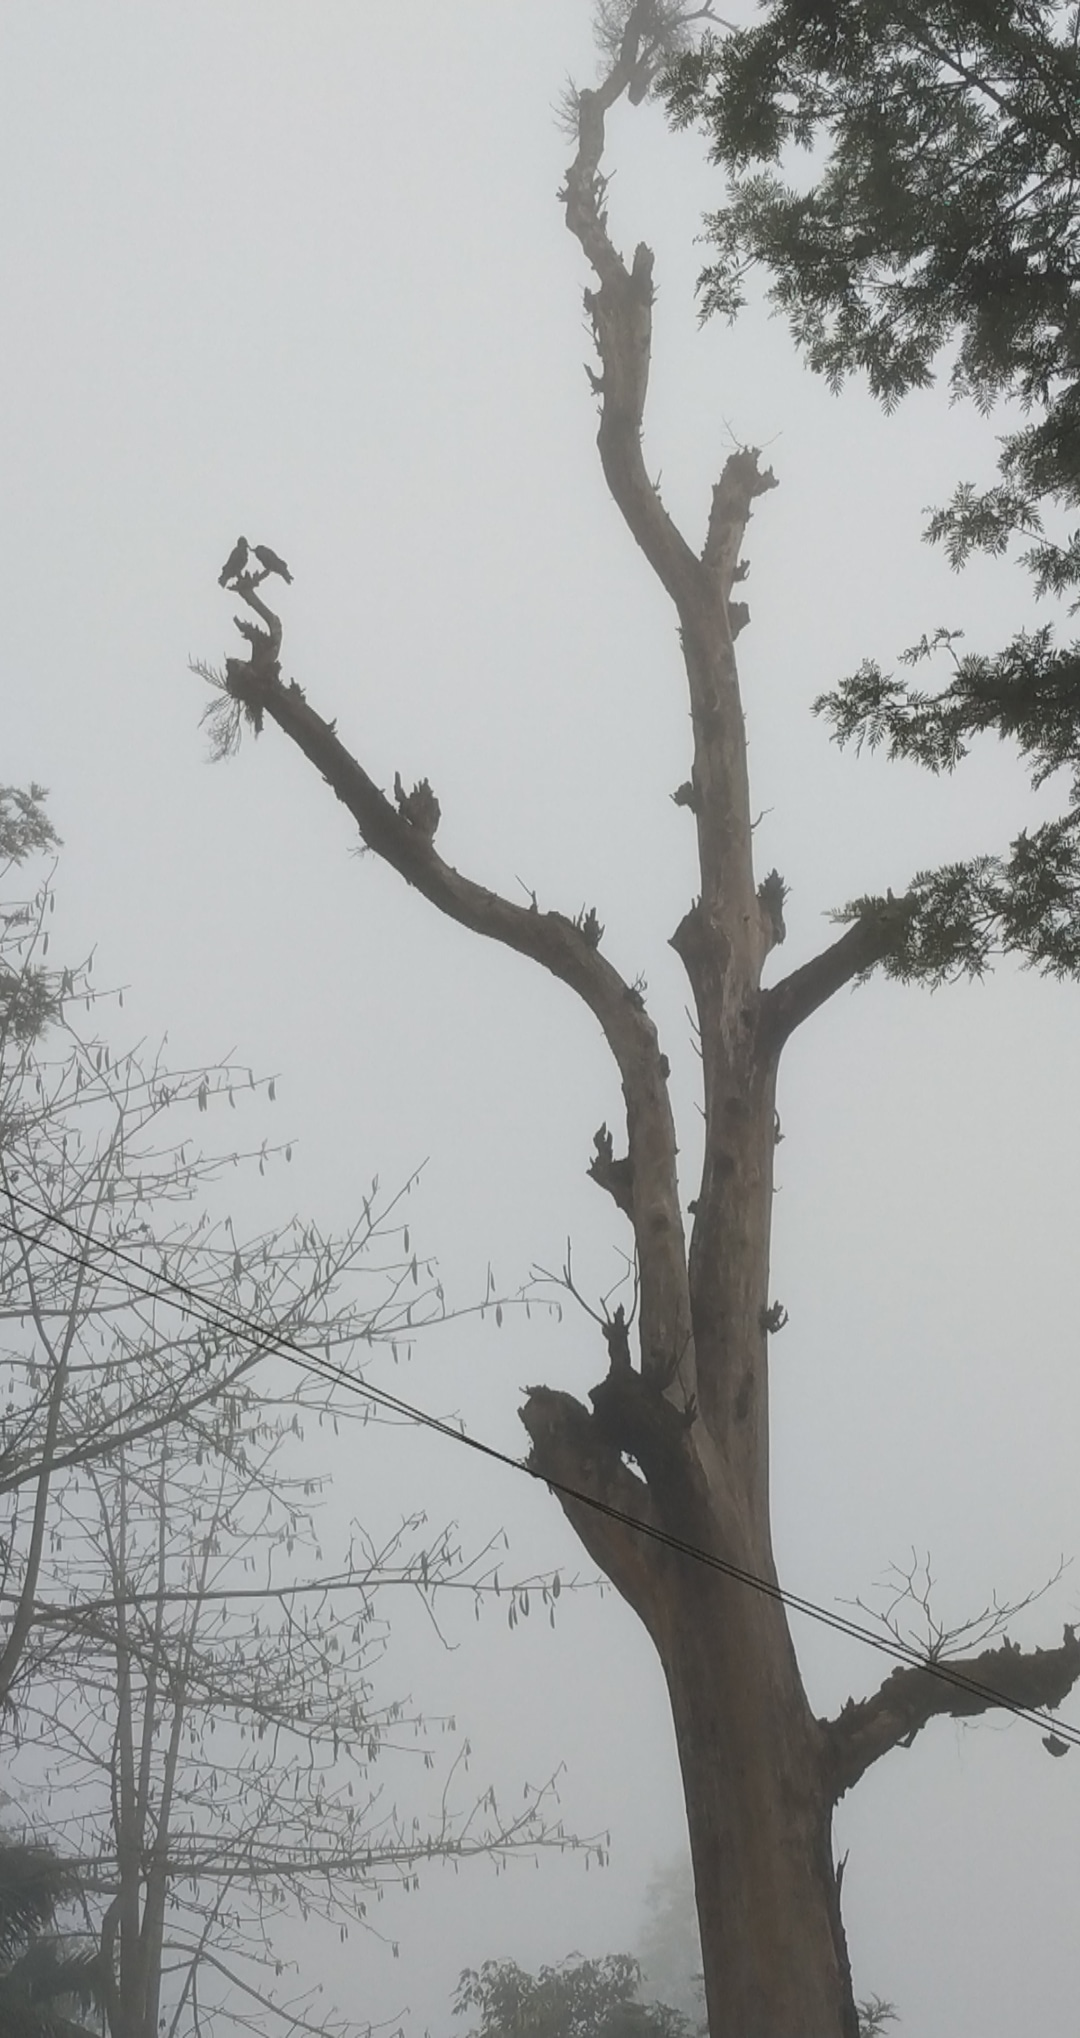 Birds perched on a tree